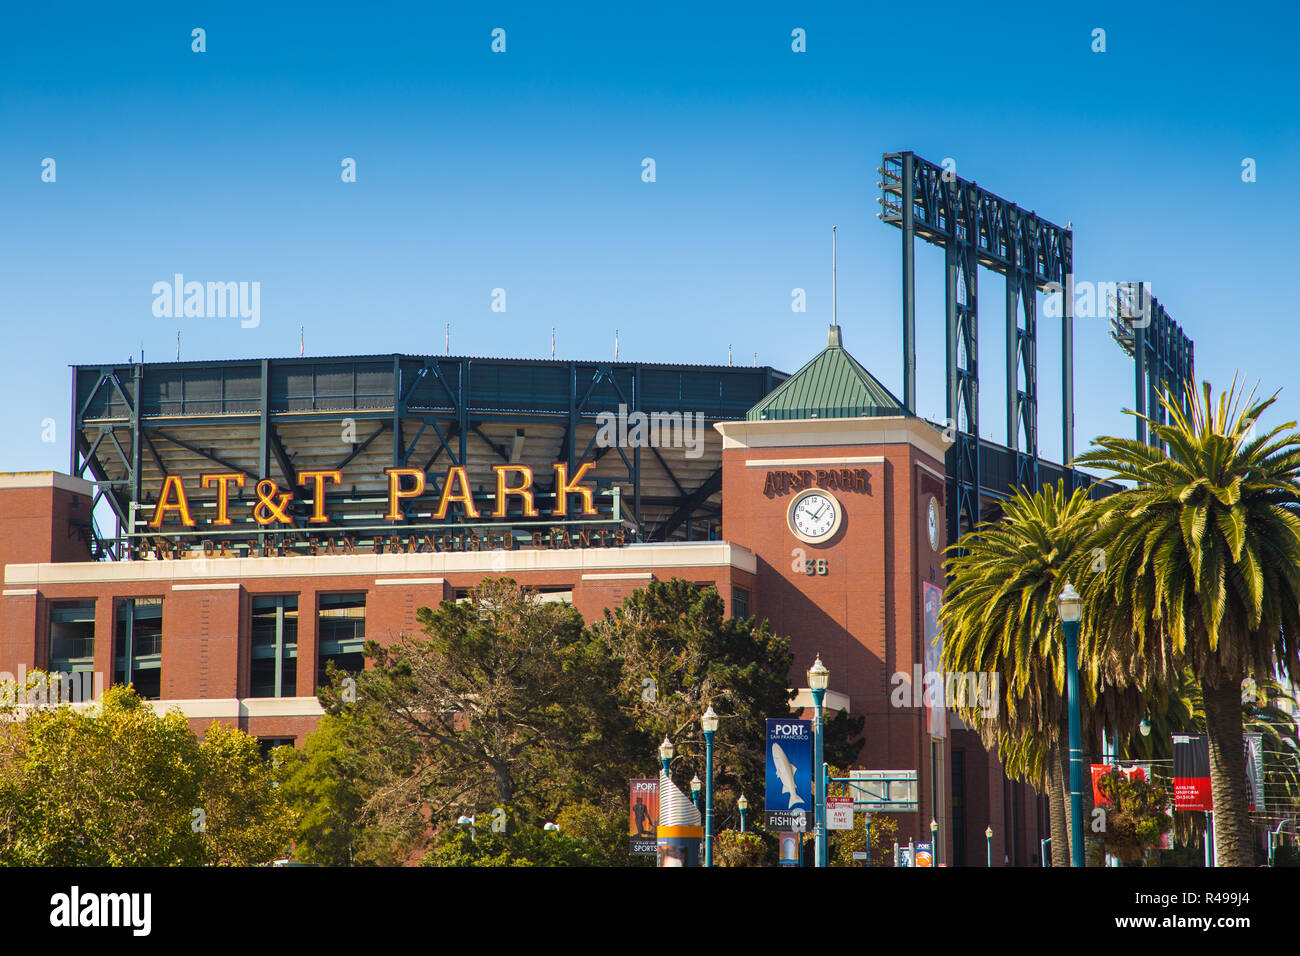 Panorama view of historic AT&T Park baseball park, home of the San Francisco Giants professional baseball franchise, on a beautiful sunny day - Stock Image